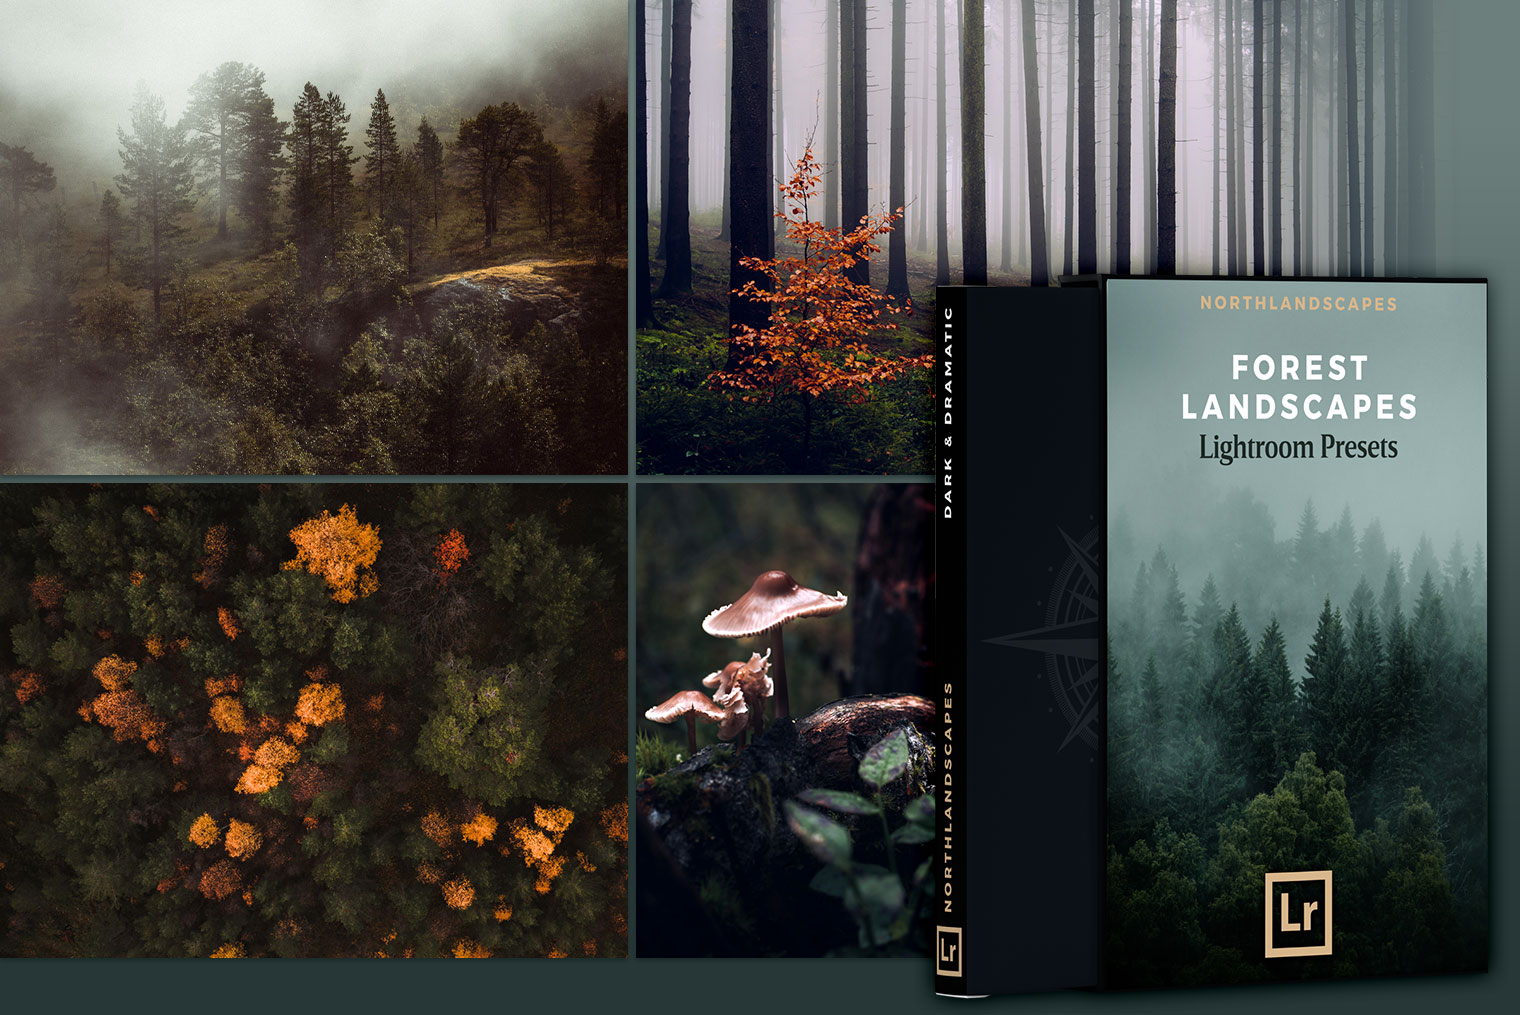 Lightroom Presets for Forest Landscapes